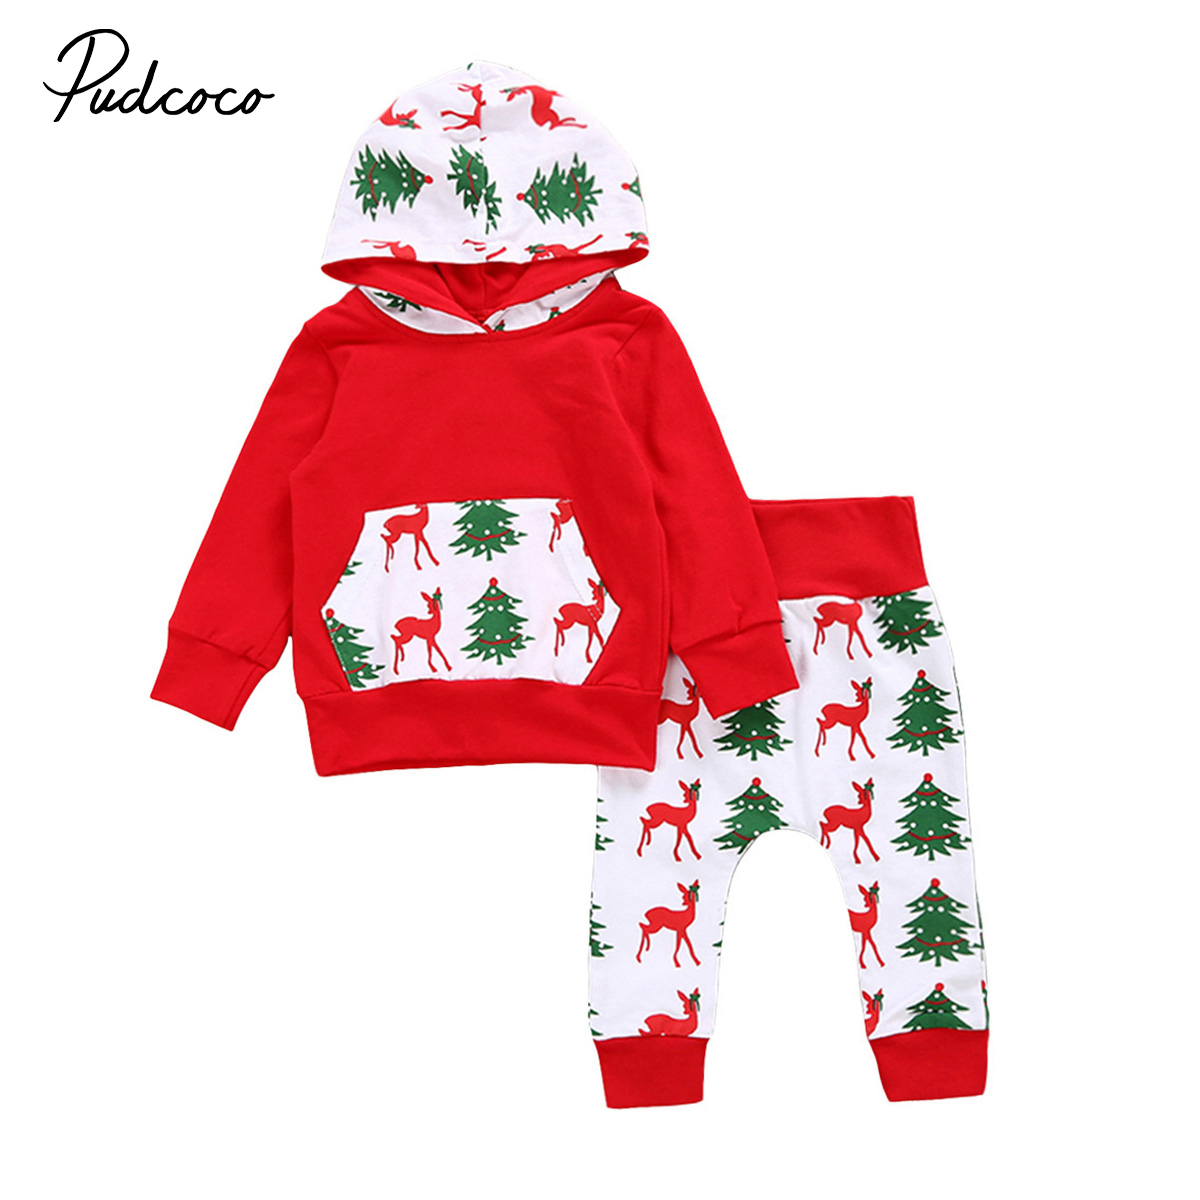 Autumn Newborn Baby Boys Girls Outfits Sweatshirt Hoodie + Pants 2Pcs Warm Outfits Set Clothes худи boys hoodie